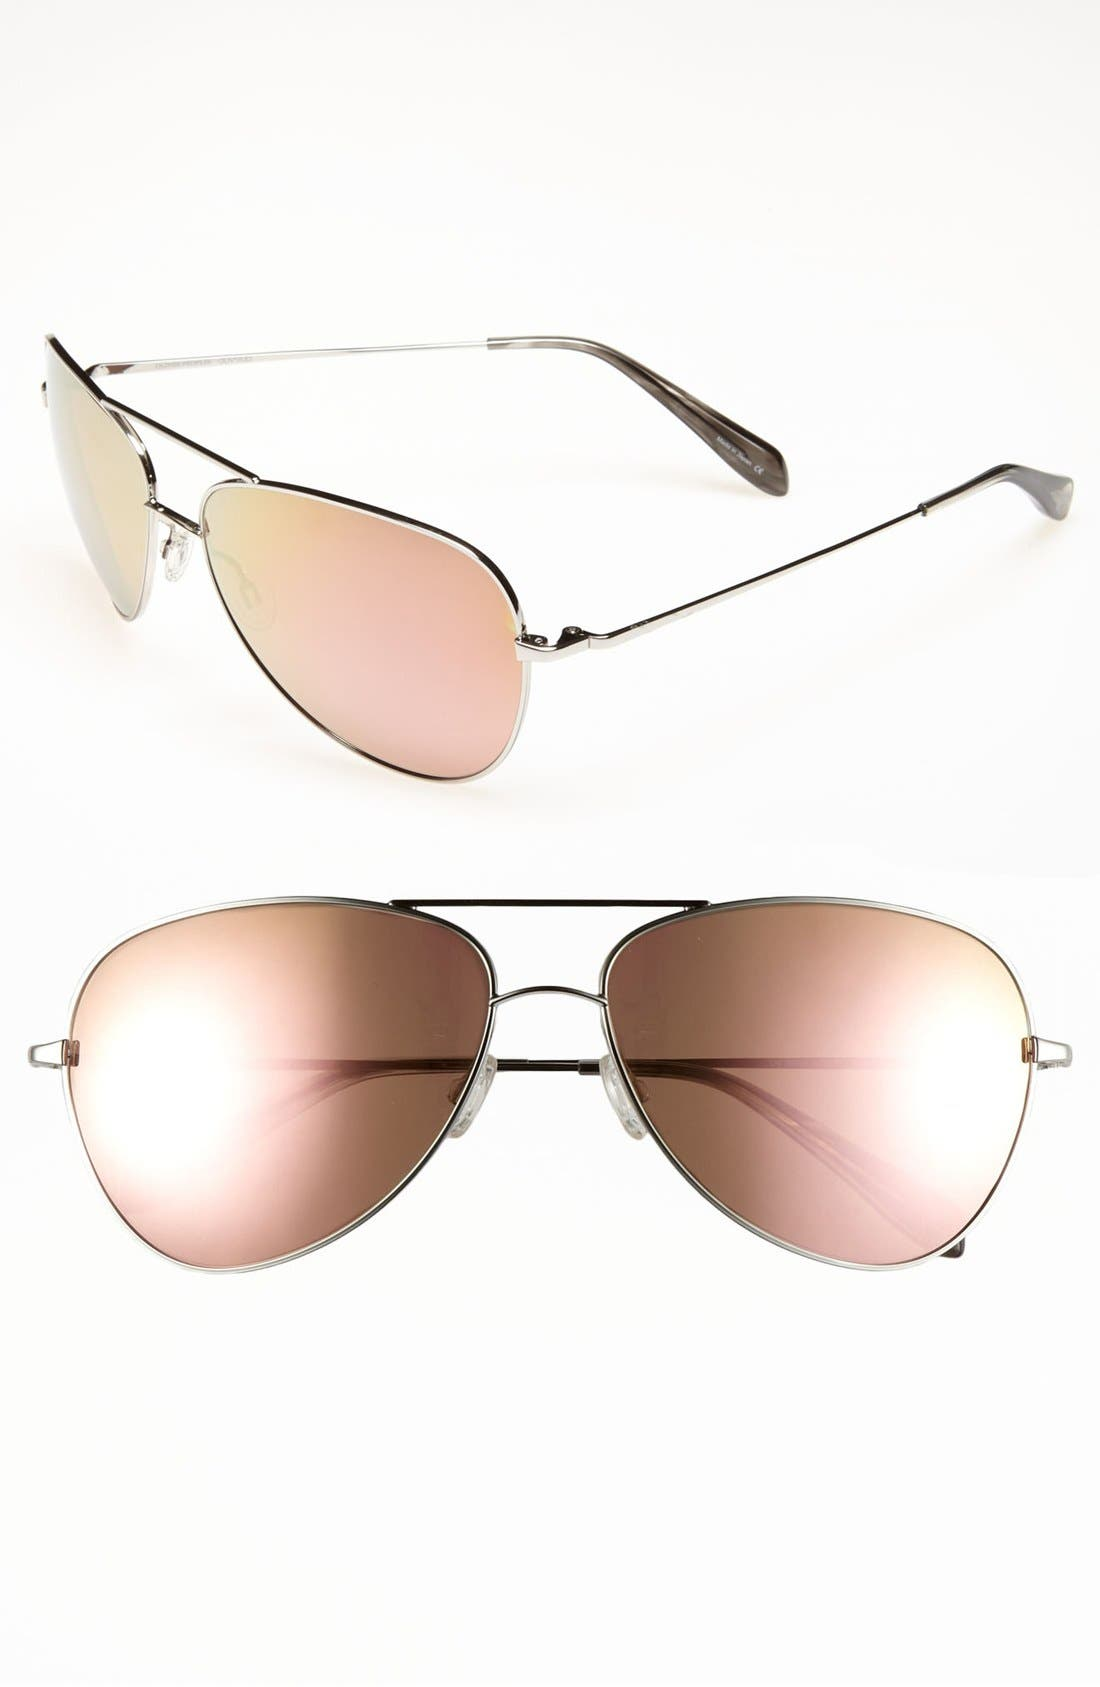 Alternate Image 1 Selected - Oliver Peoples Aviator Sunglasses (Online Exclusive)